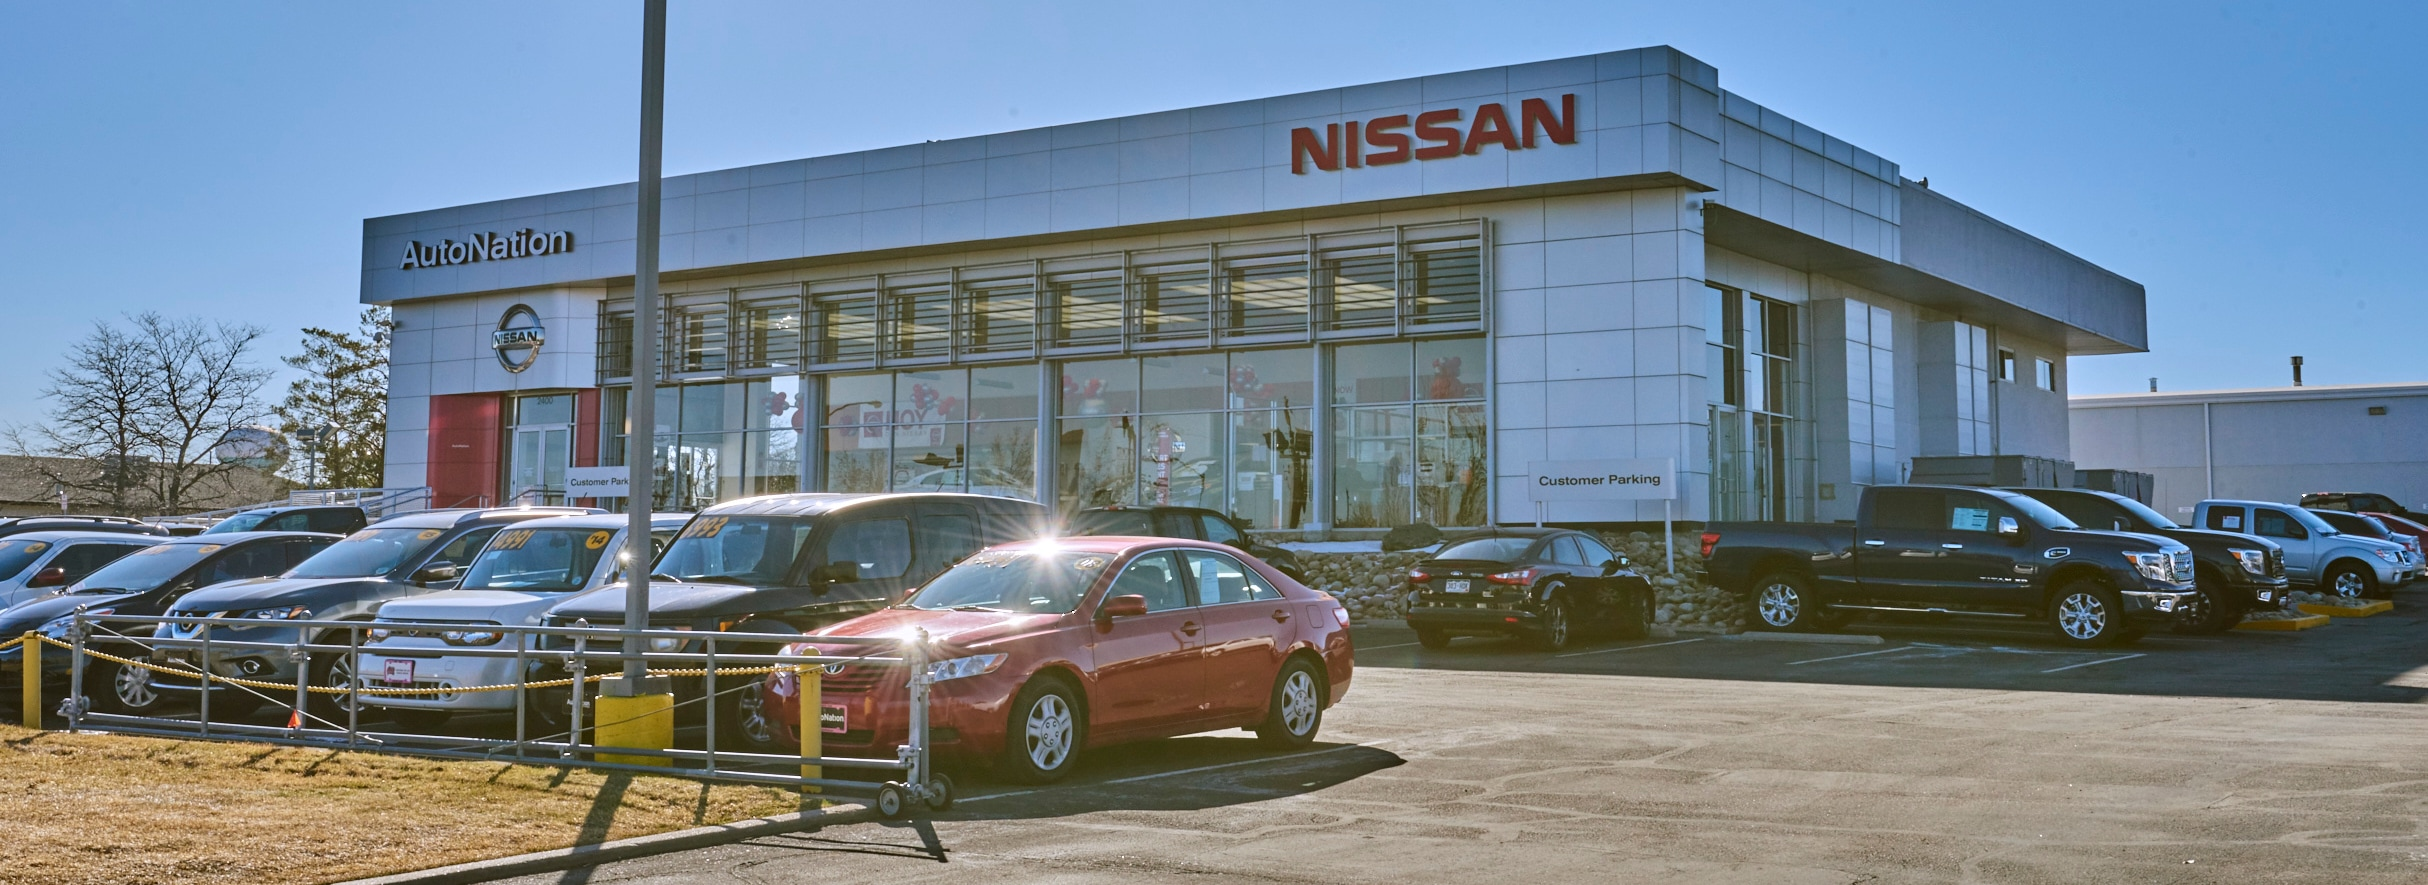 AutoNation Nissan 104 Dealership